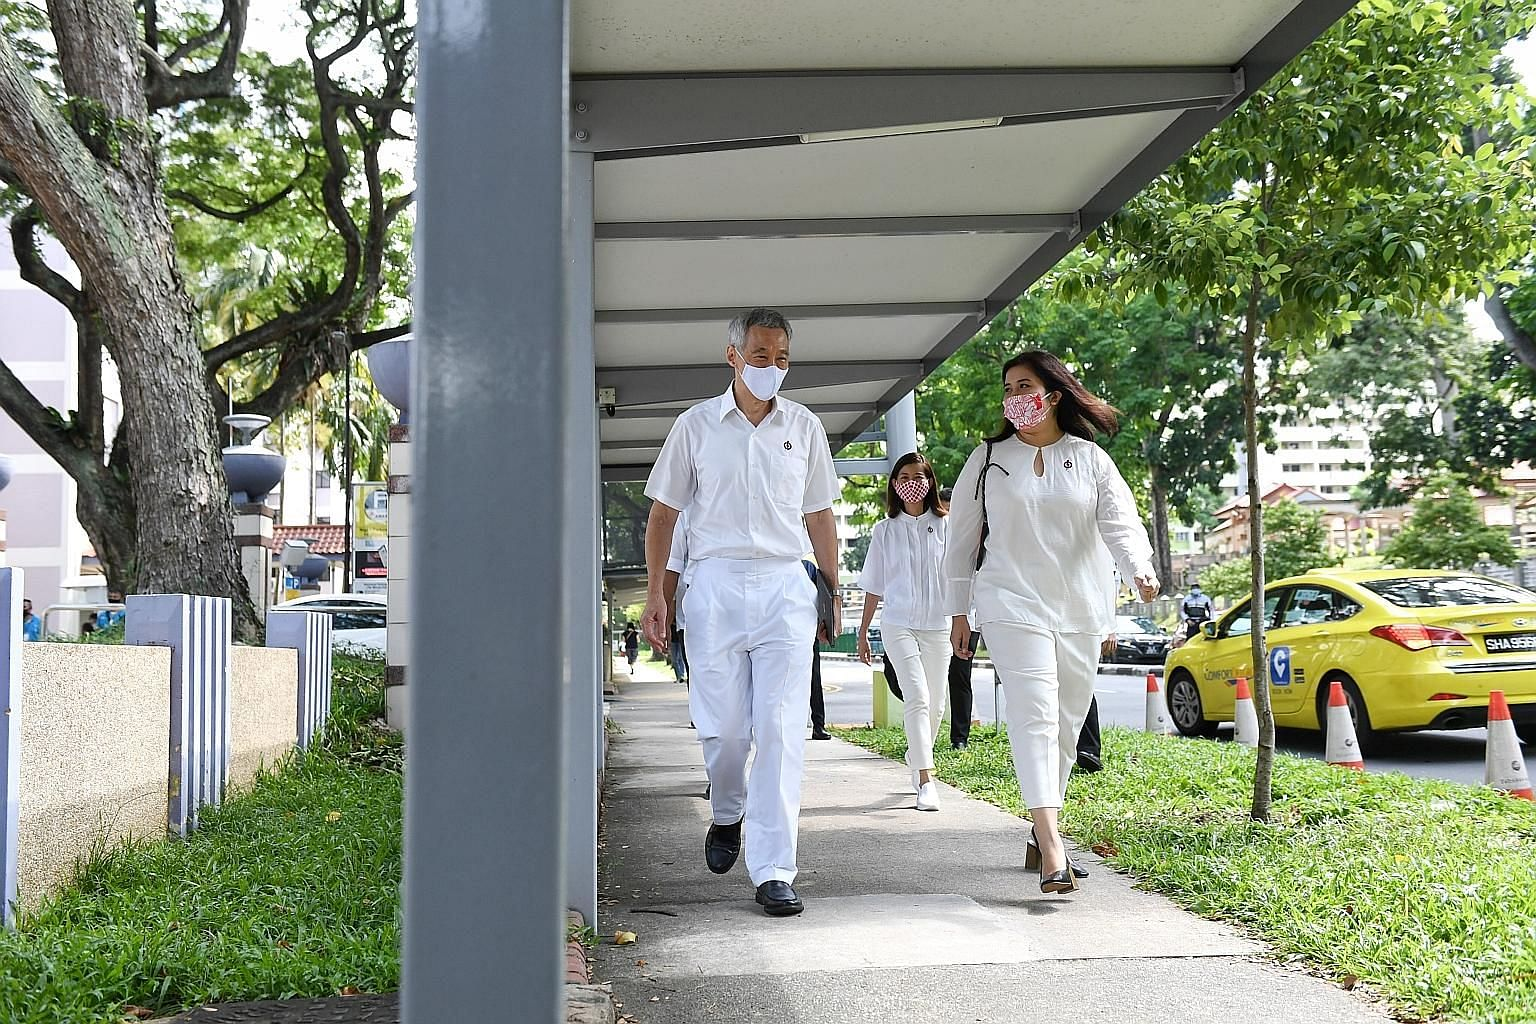 Prime Minister Lee Hsien Loong and fellow Ang Mo Kio GRC team member Nadia Ahmad Samdin on their way to Deyi Secondary School nomination centre yesterday. ST PHOTO: SHINTARO TAY